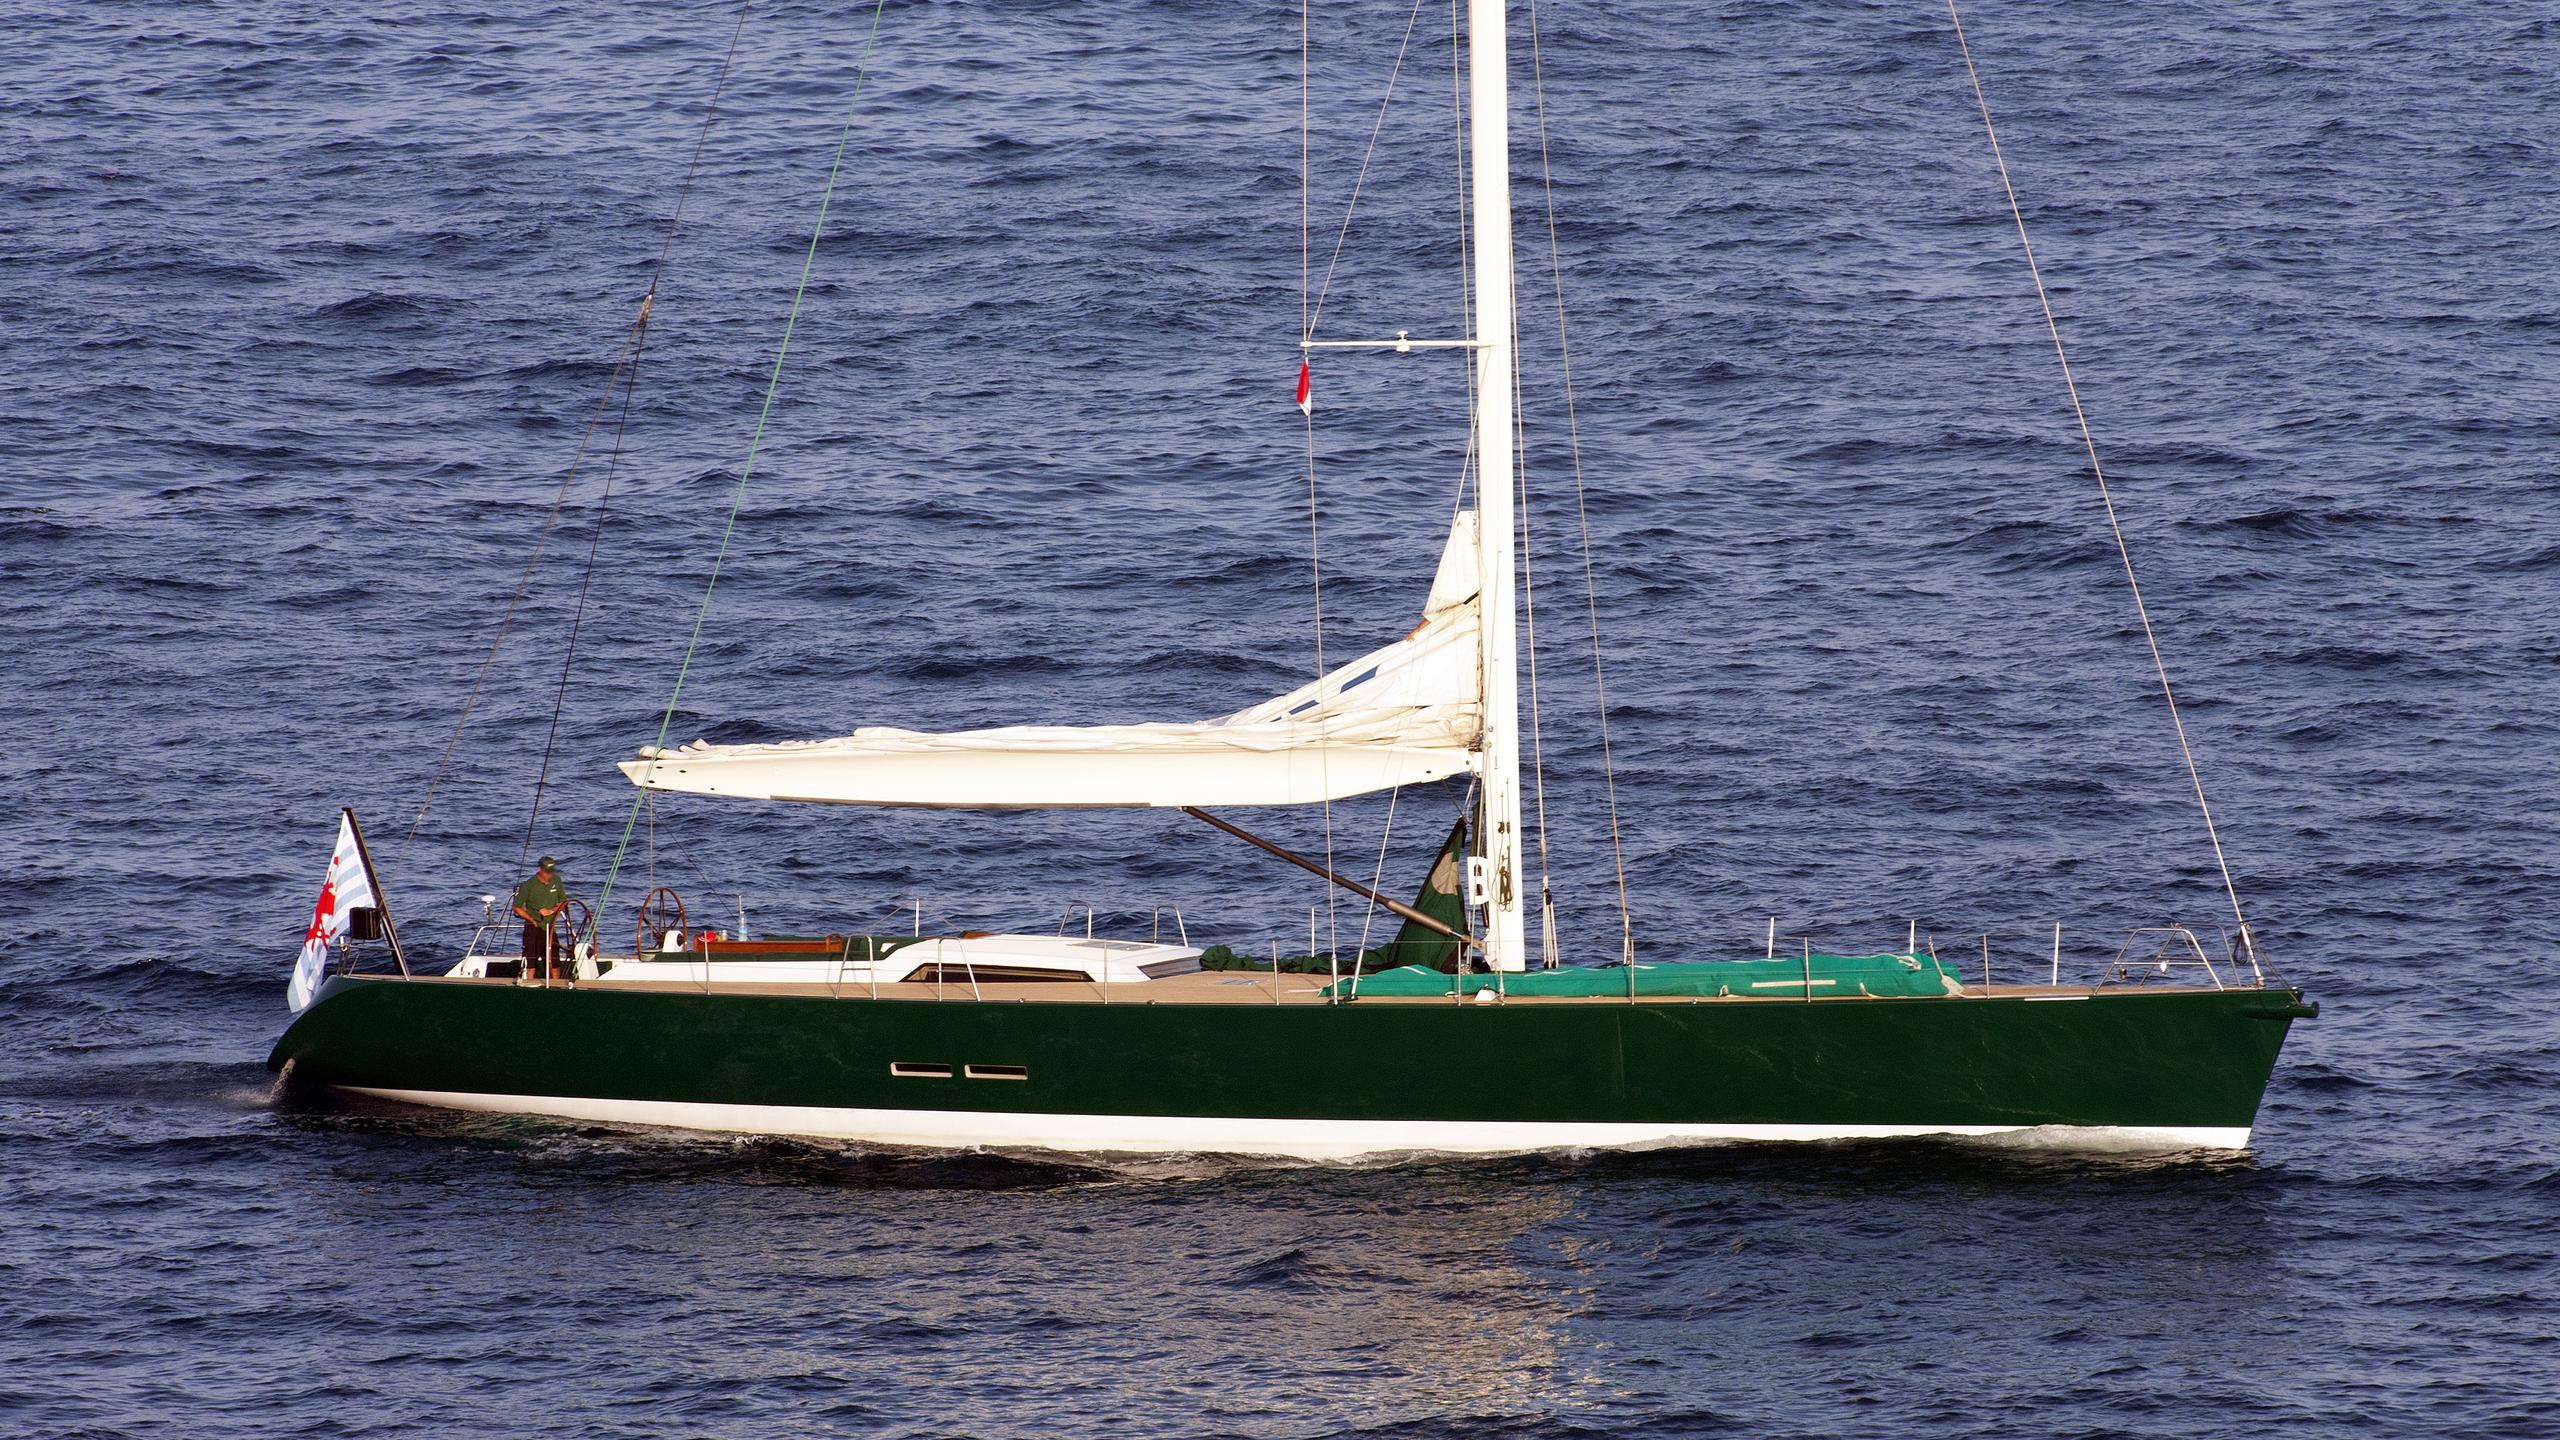 genie-of-the-lamp-sailing-yacht-maxi-dolphin-wally-77-1995-24m-profile-running